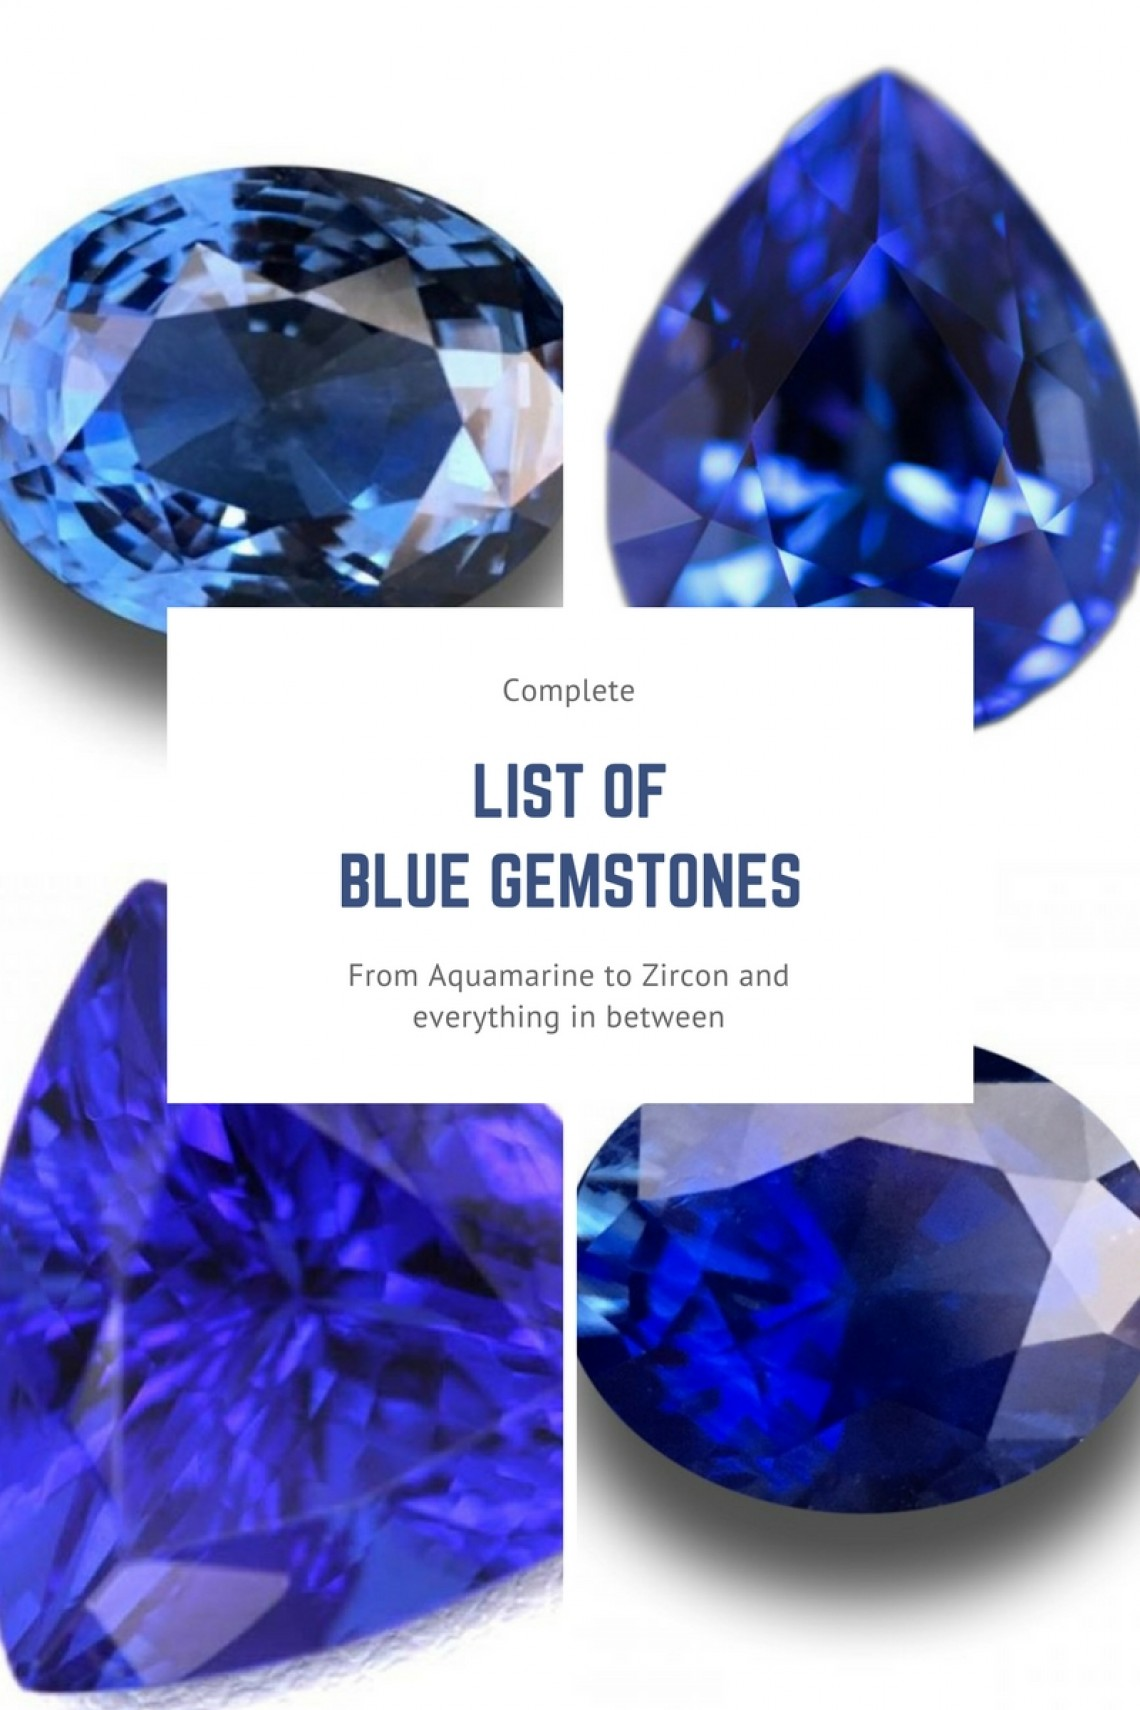 gemstones royal lanka sku shape lankan grs blue sapphire gemstone cushion sri carat